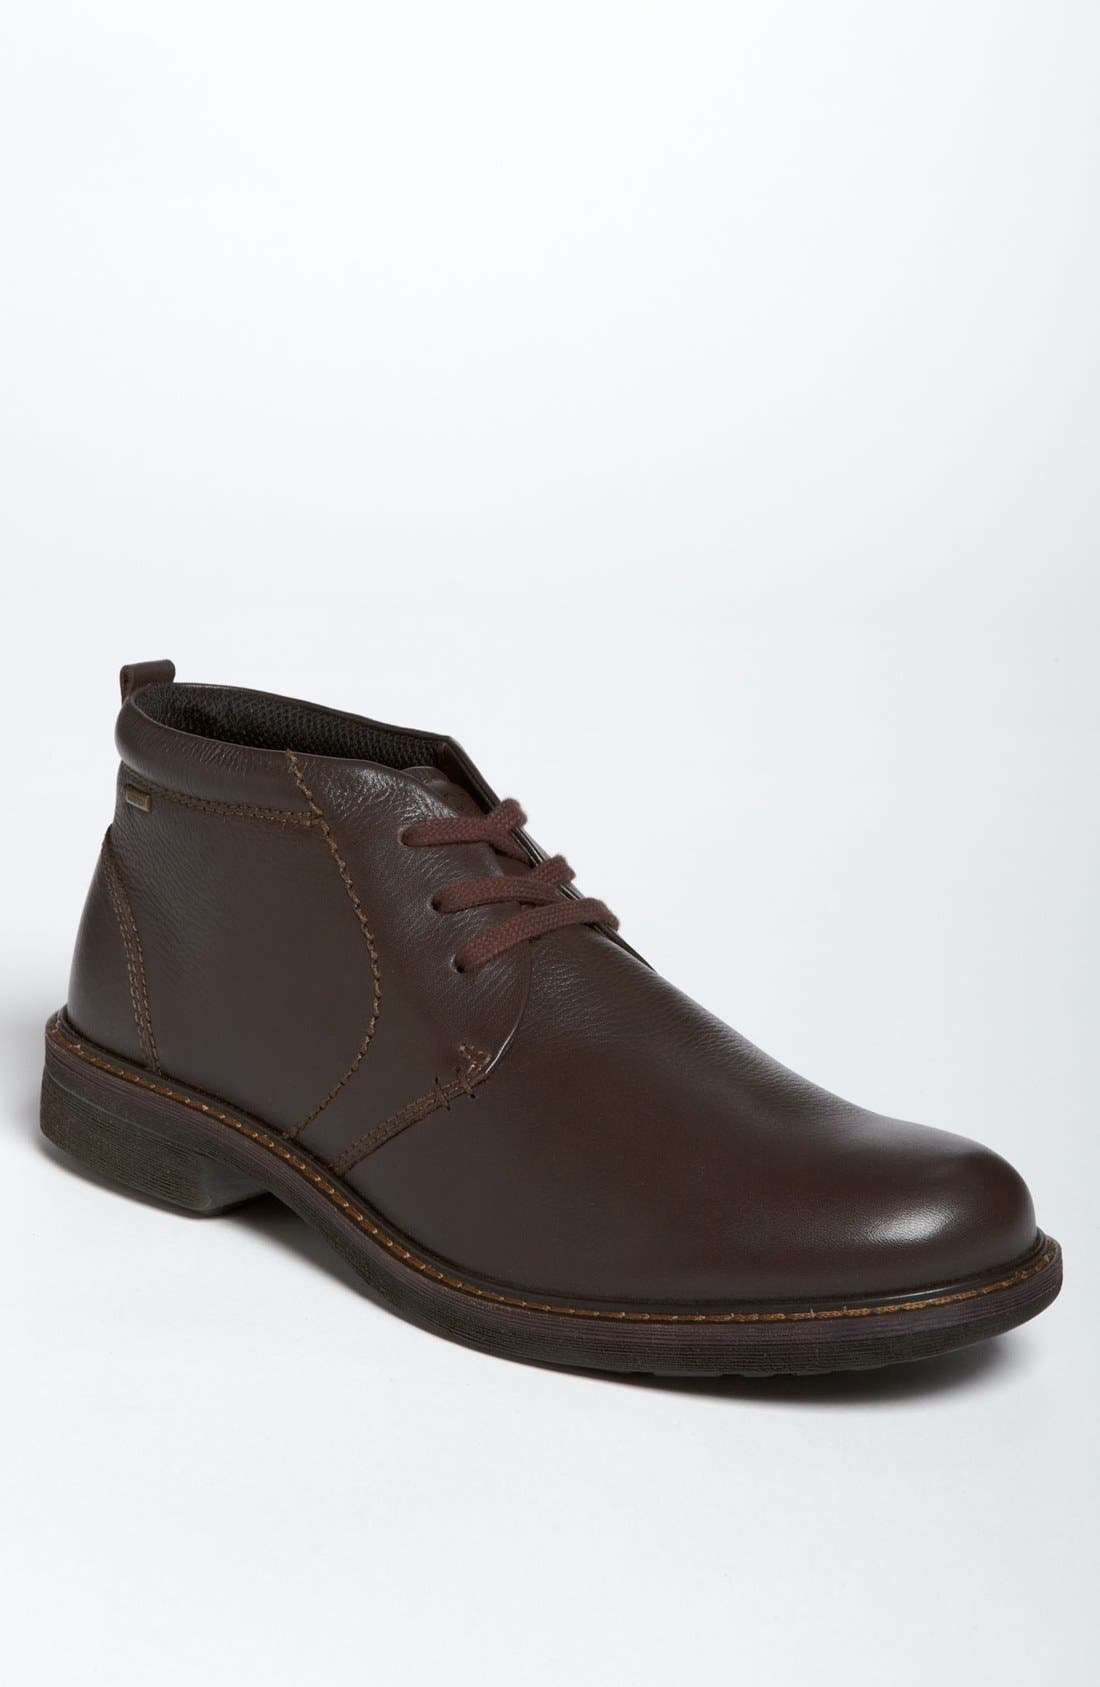 'Turn' Chukka Boot,                         Main,                         color, COFFEE LEATHER